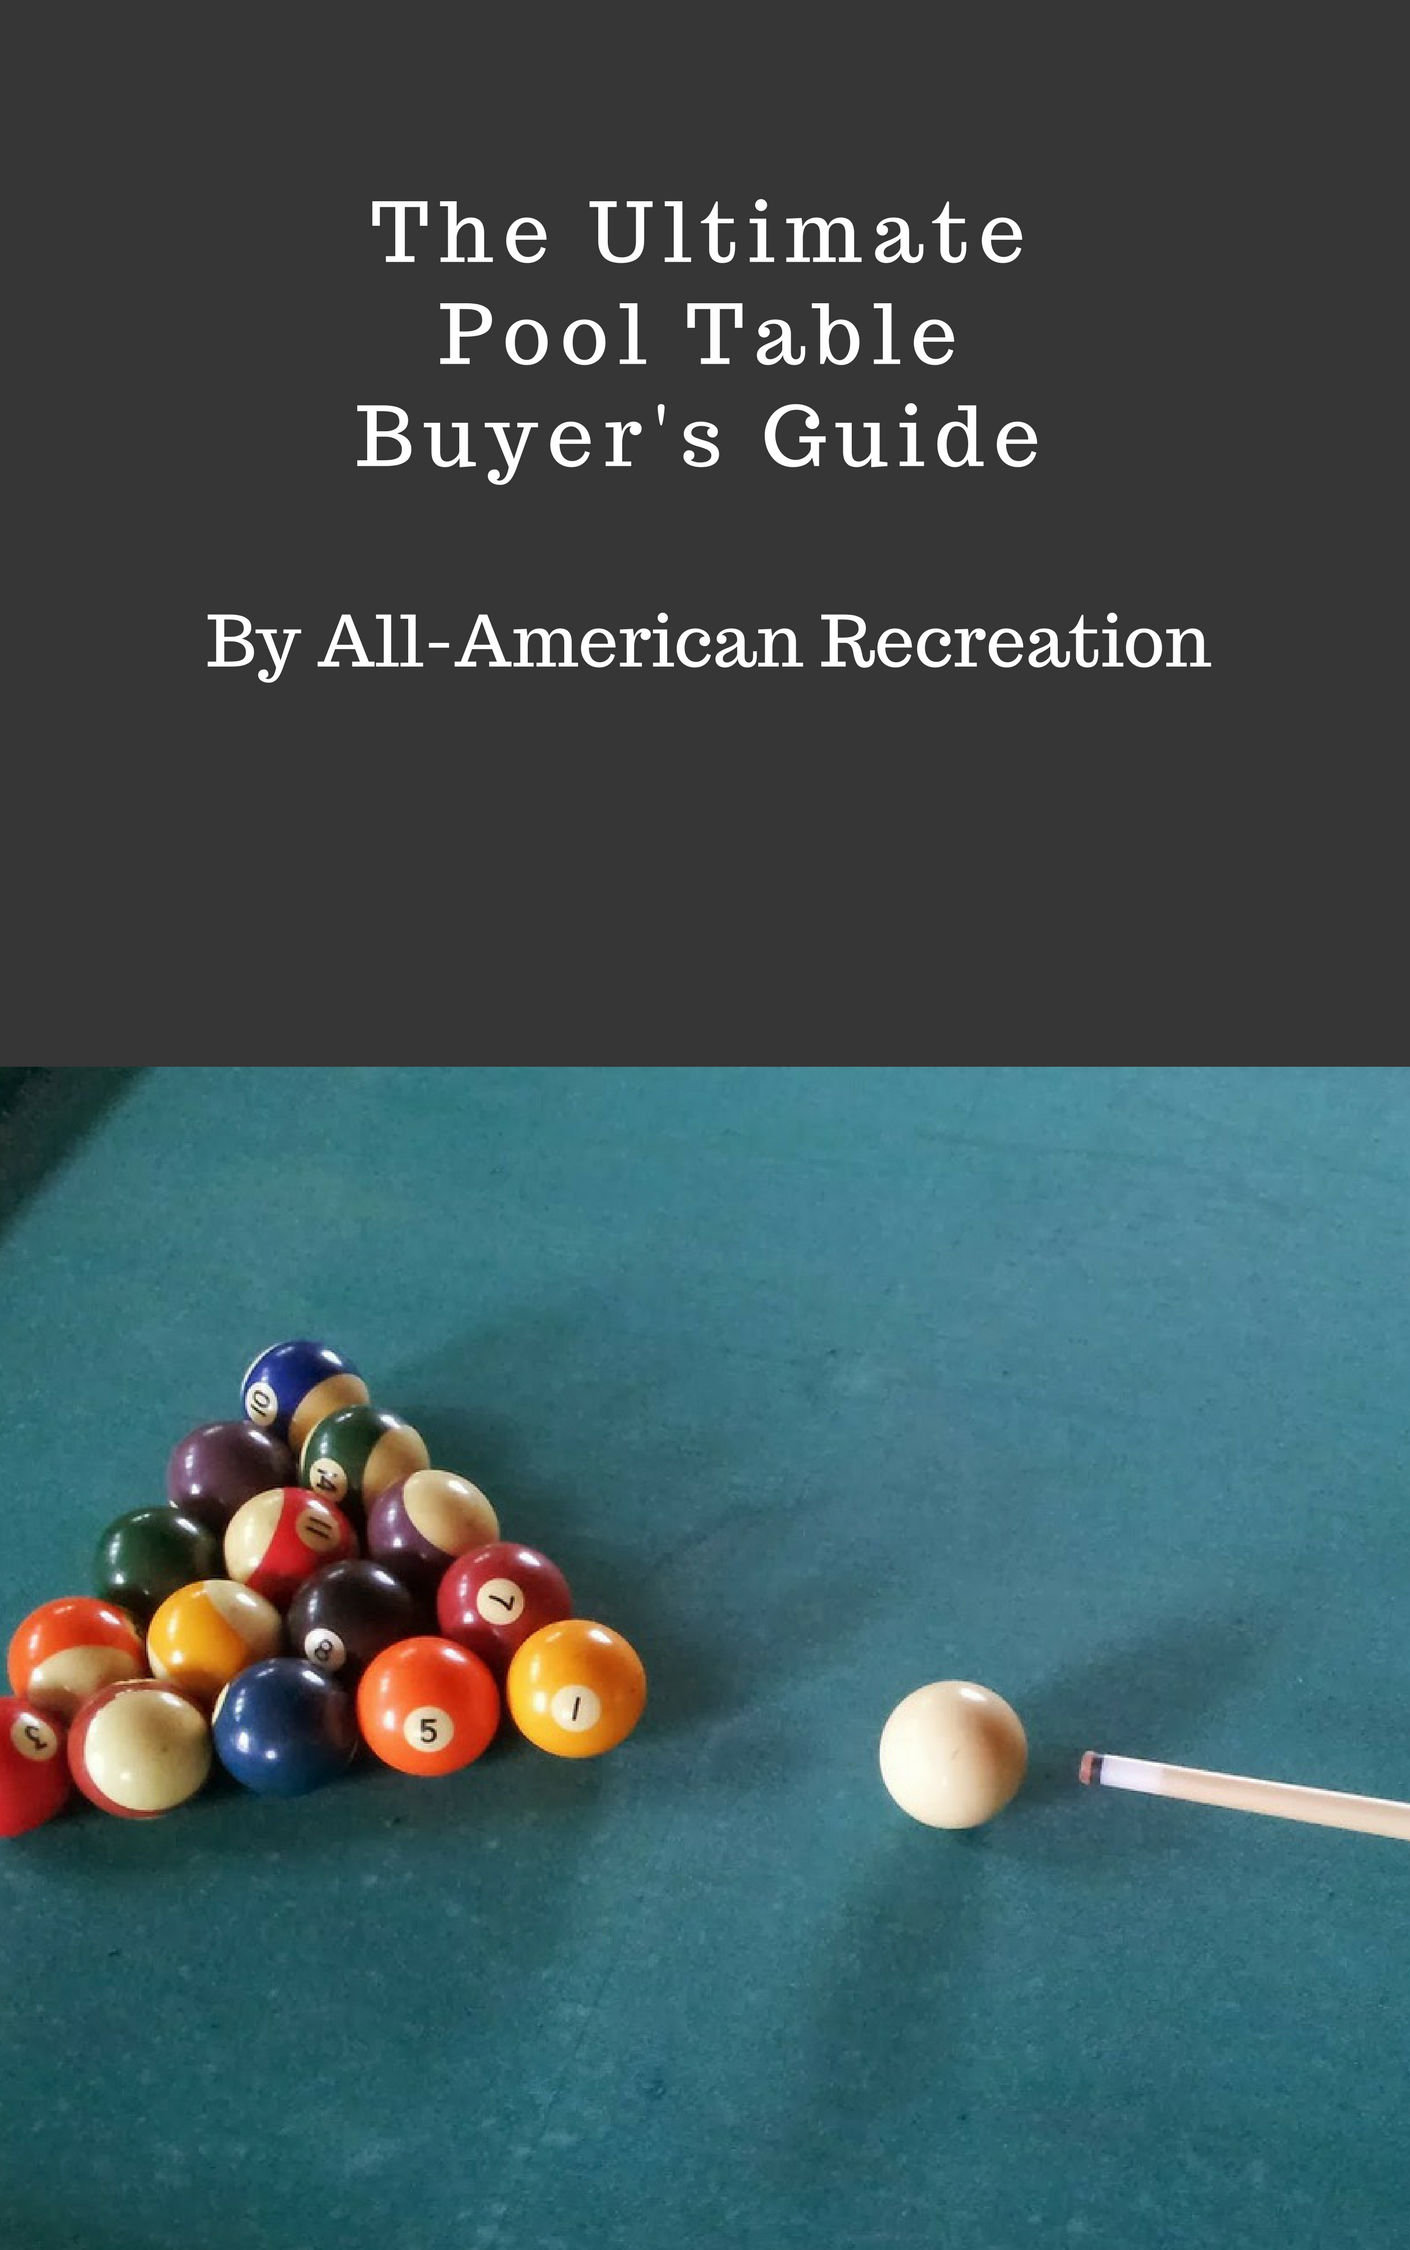 Pool Table Buyer's Guide by All-American Recreation